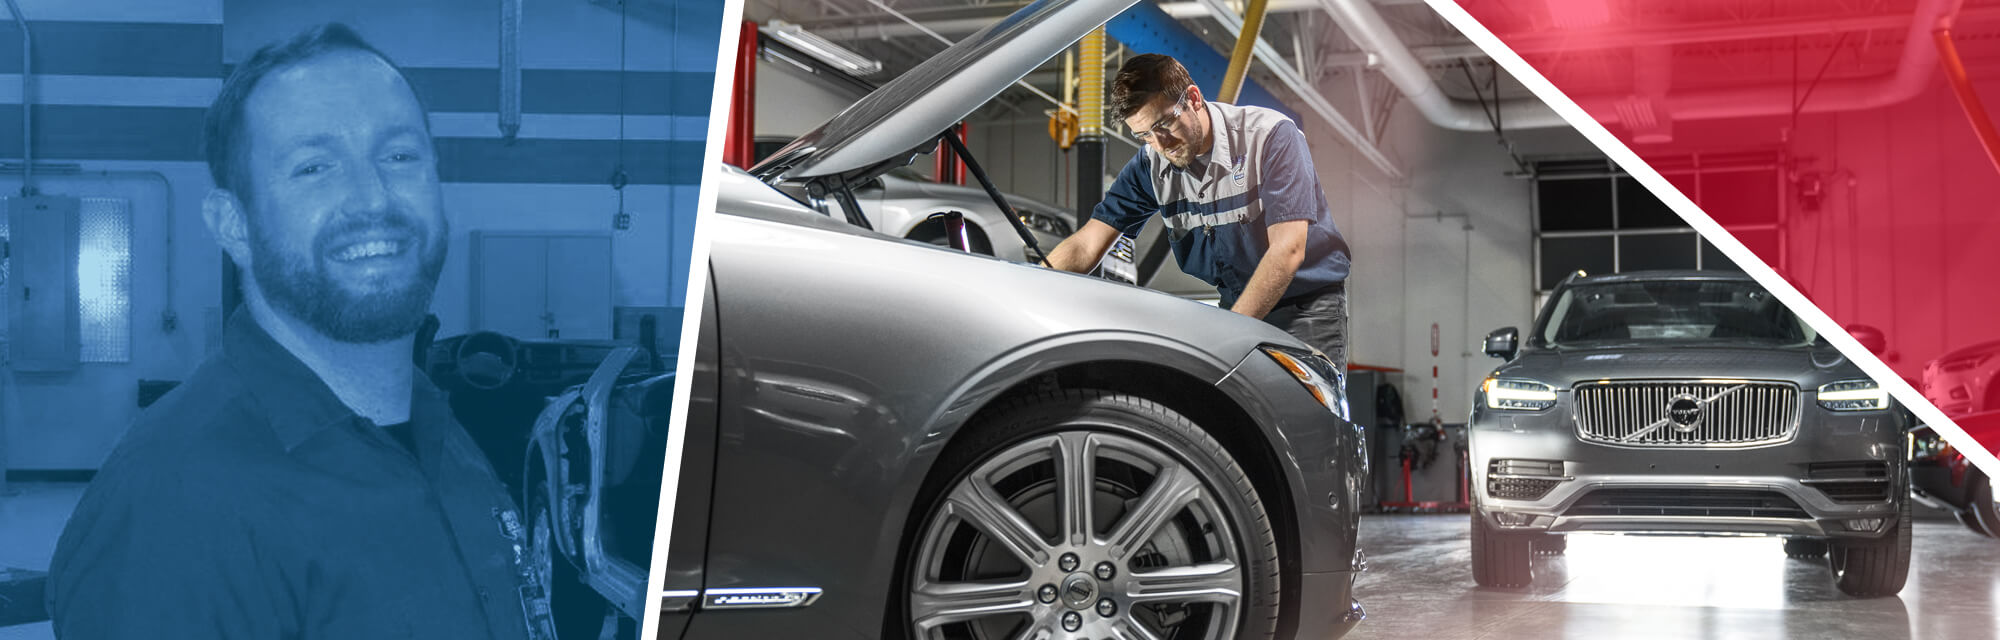 An image of UTI Automotive Instructor Sean Callahan along with an image of a student working on a Volvo